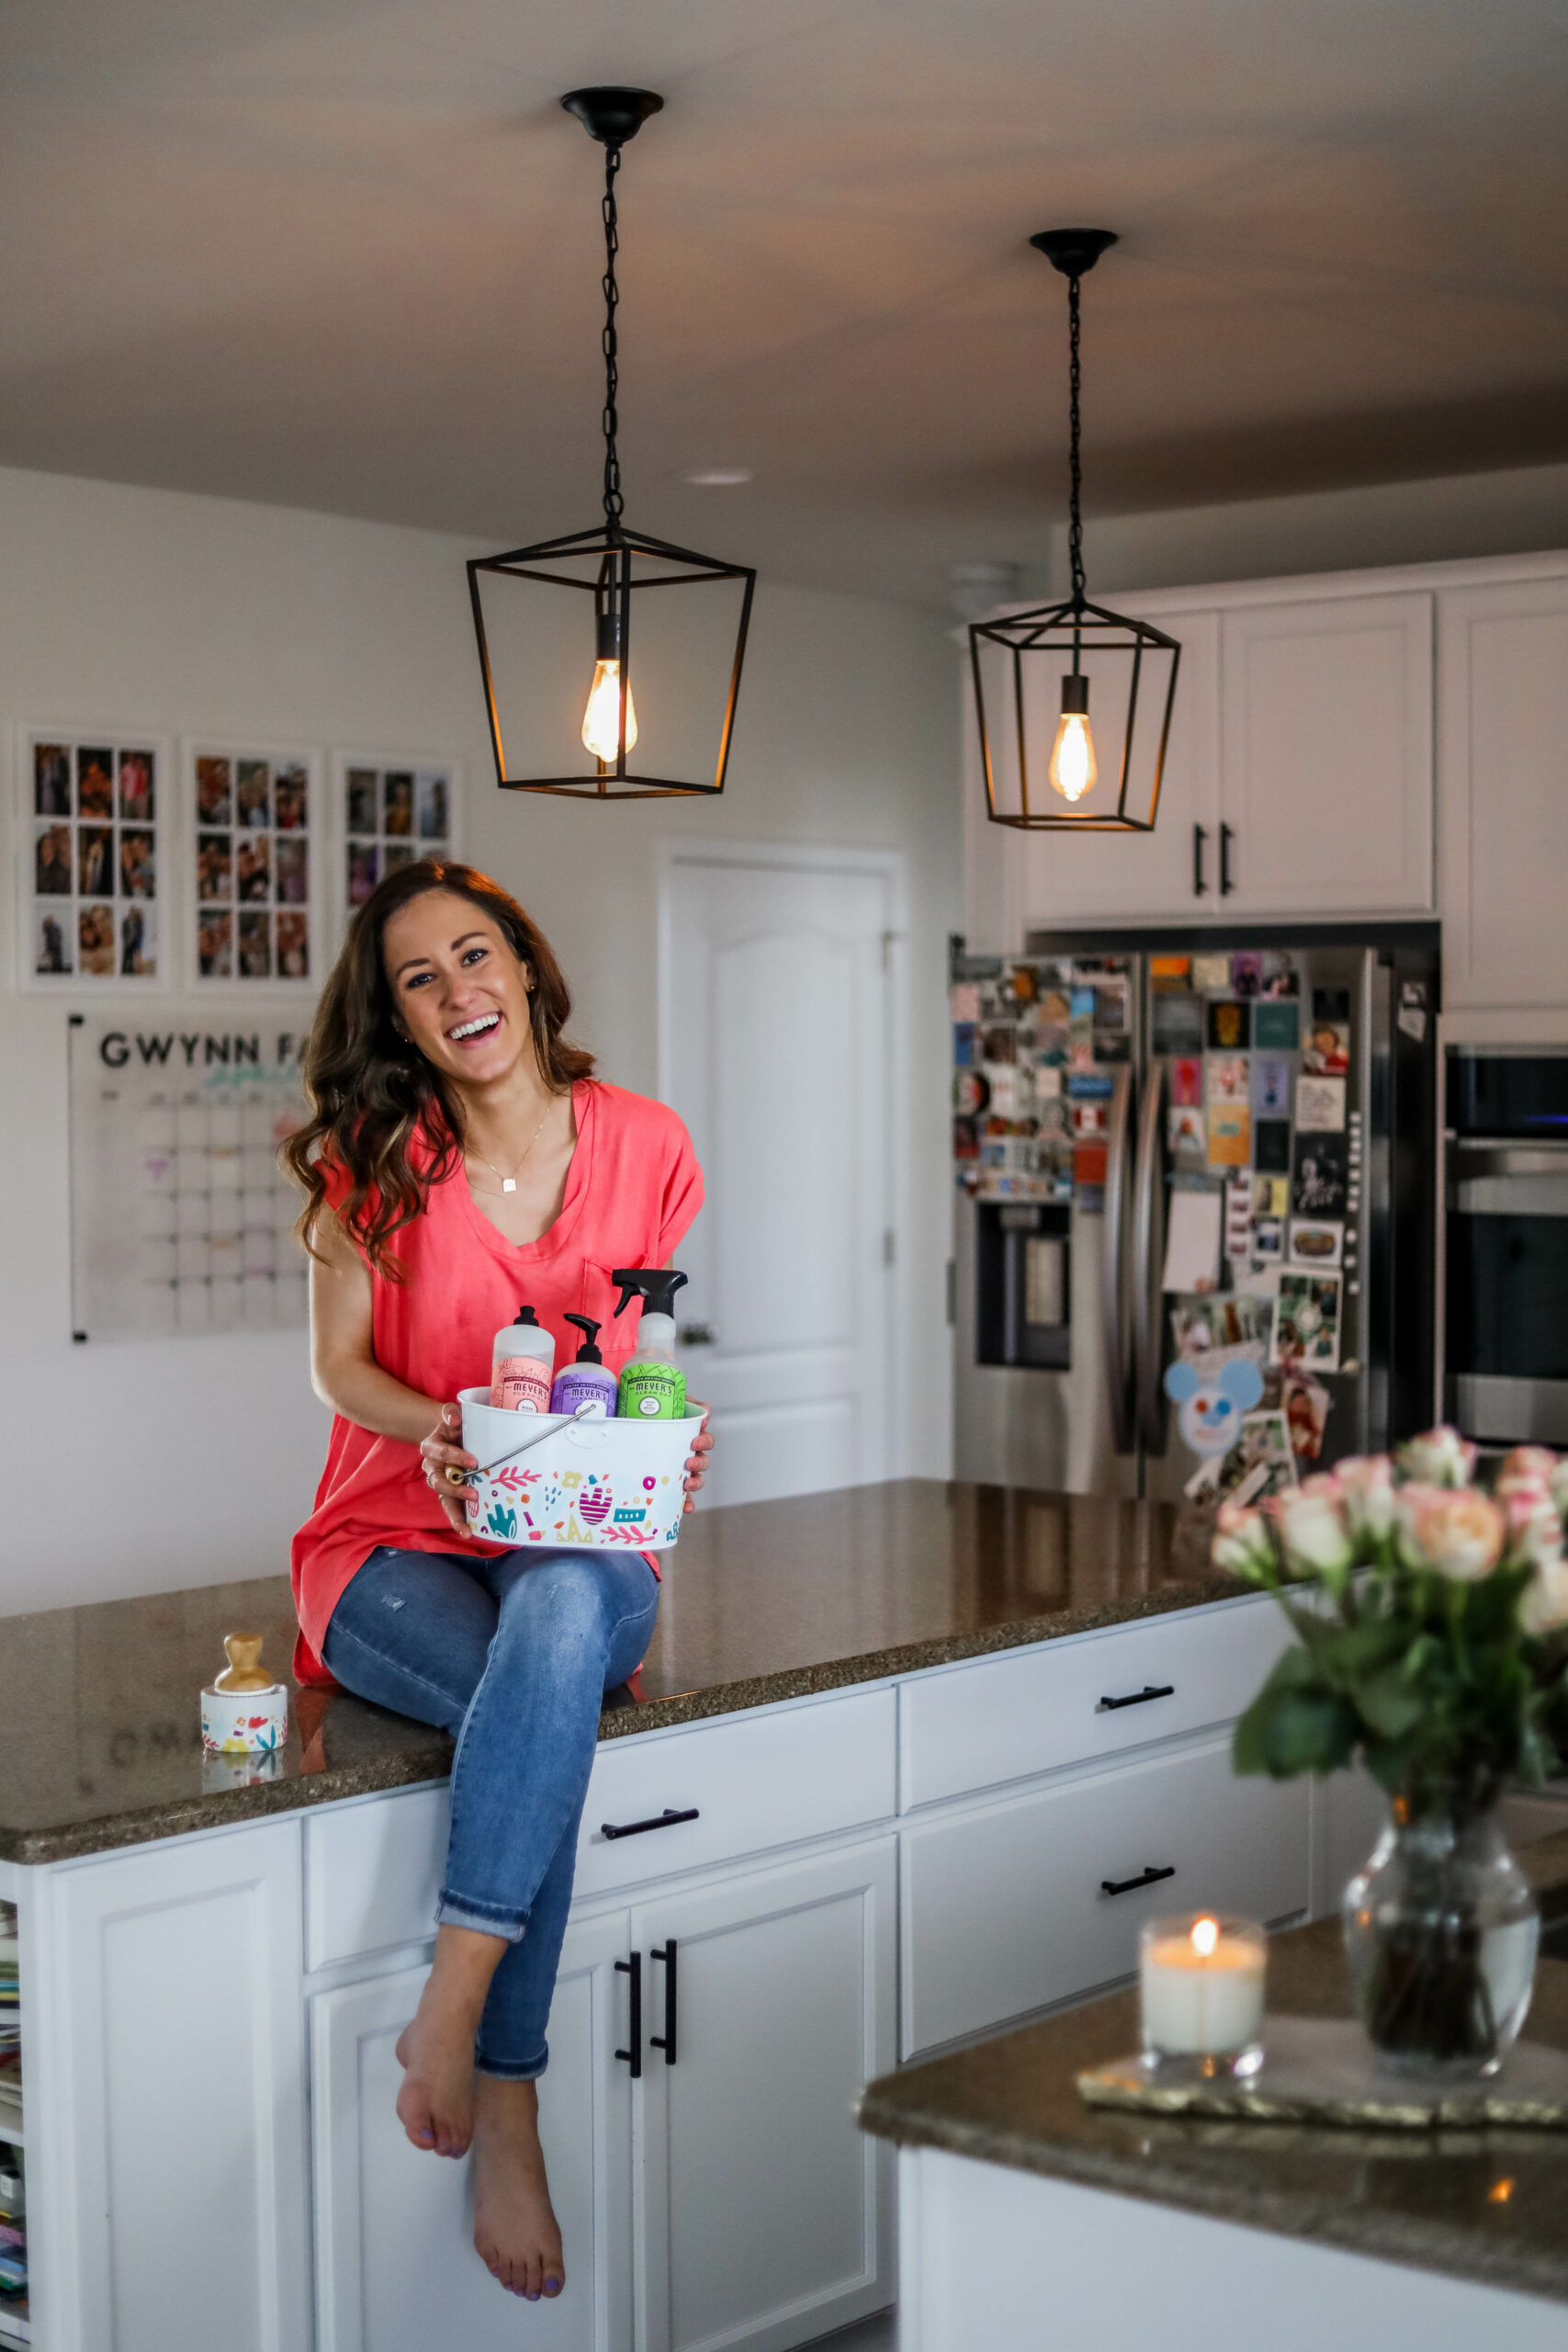 15 Kitchen SPRING CLEANING TIPS with Grove - on Coming Up Roses